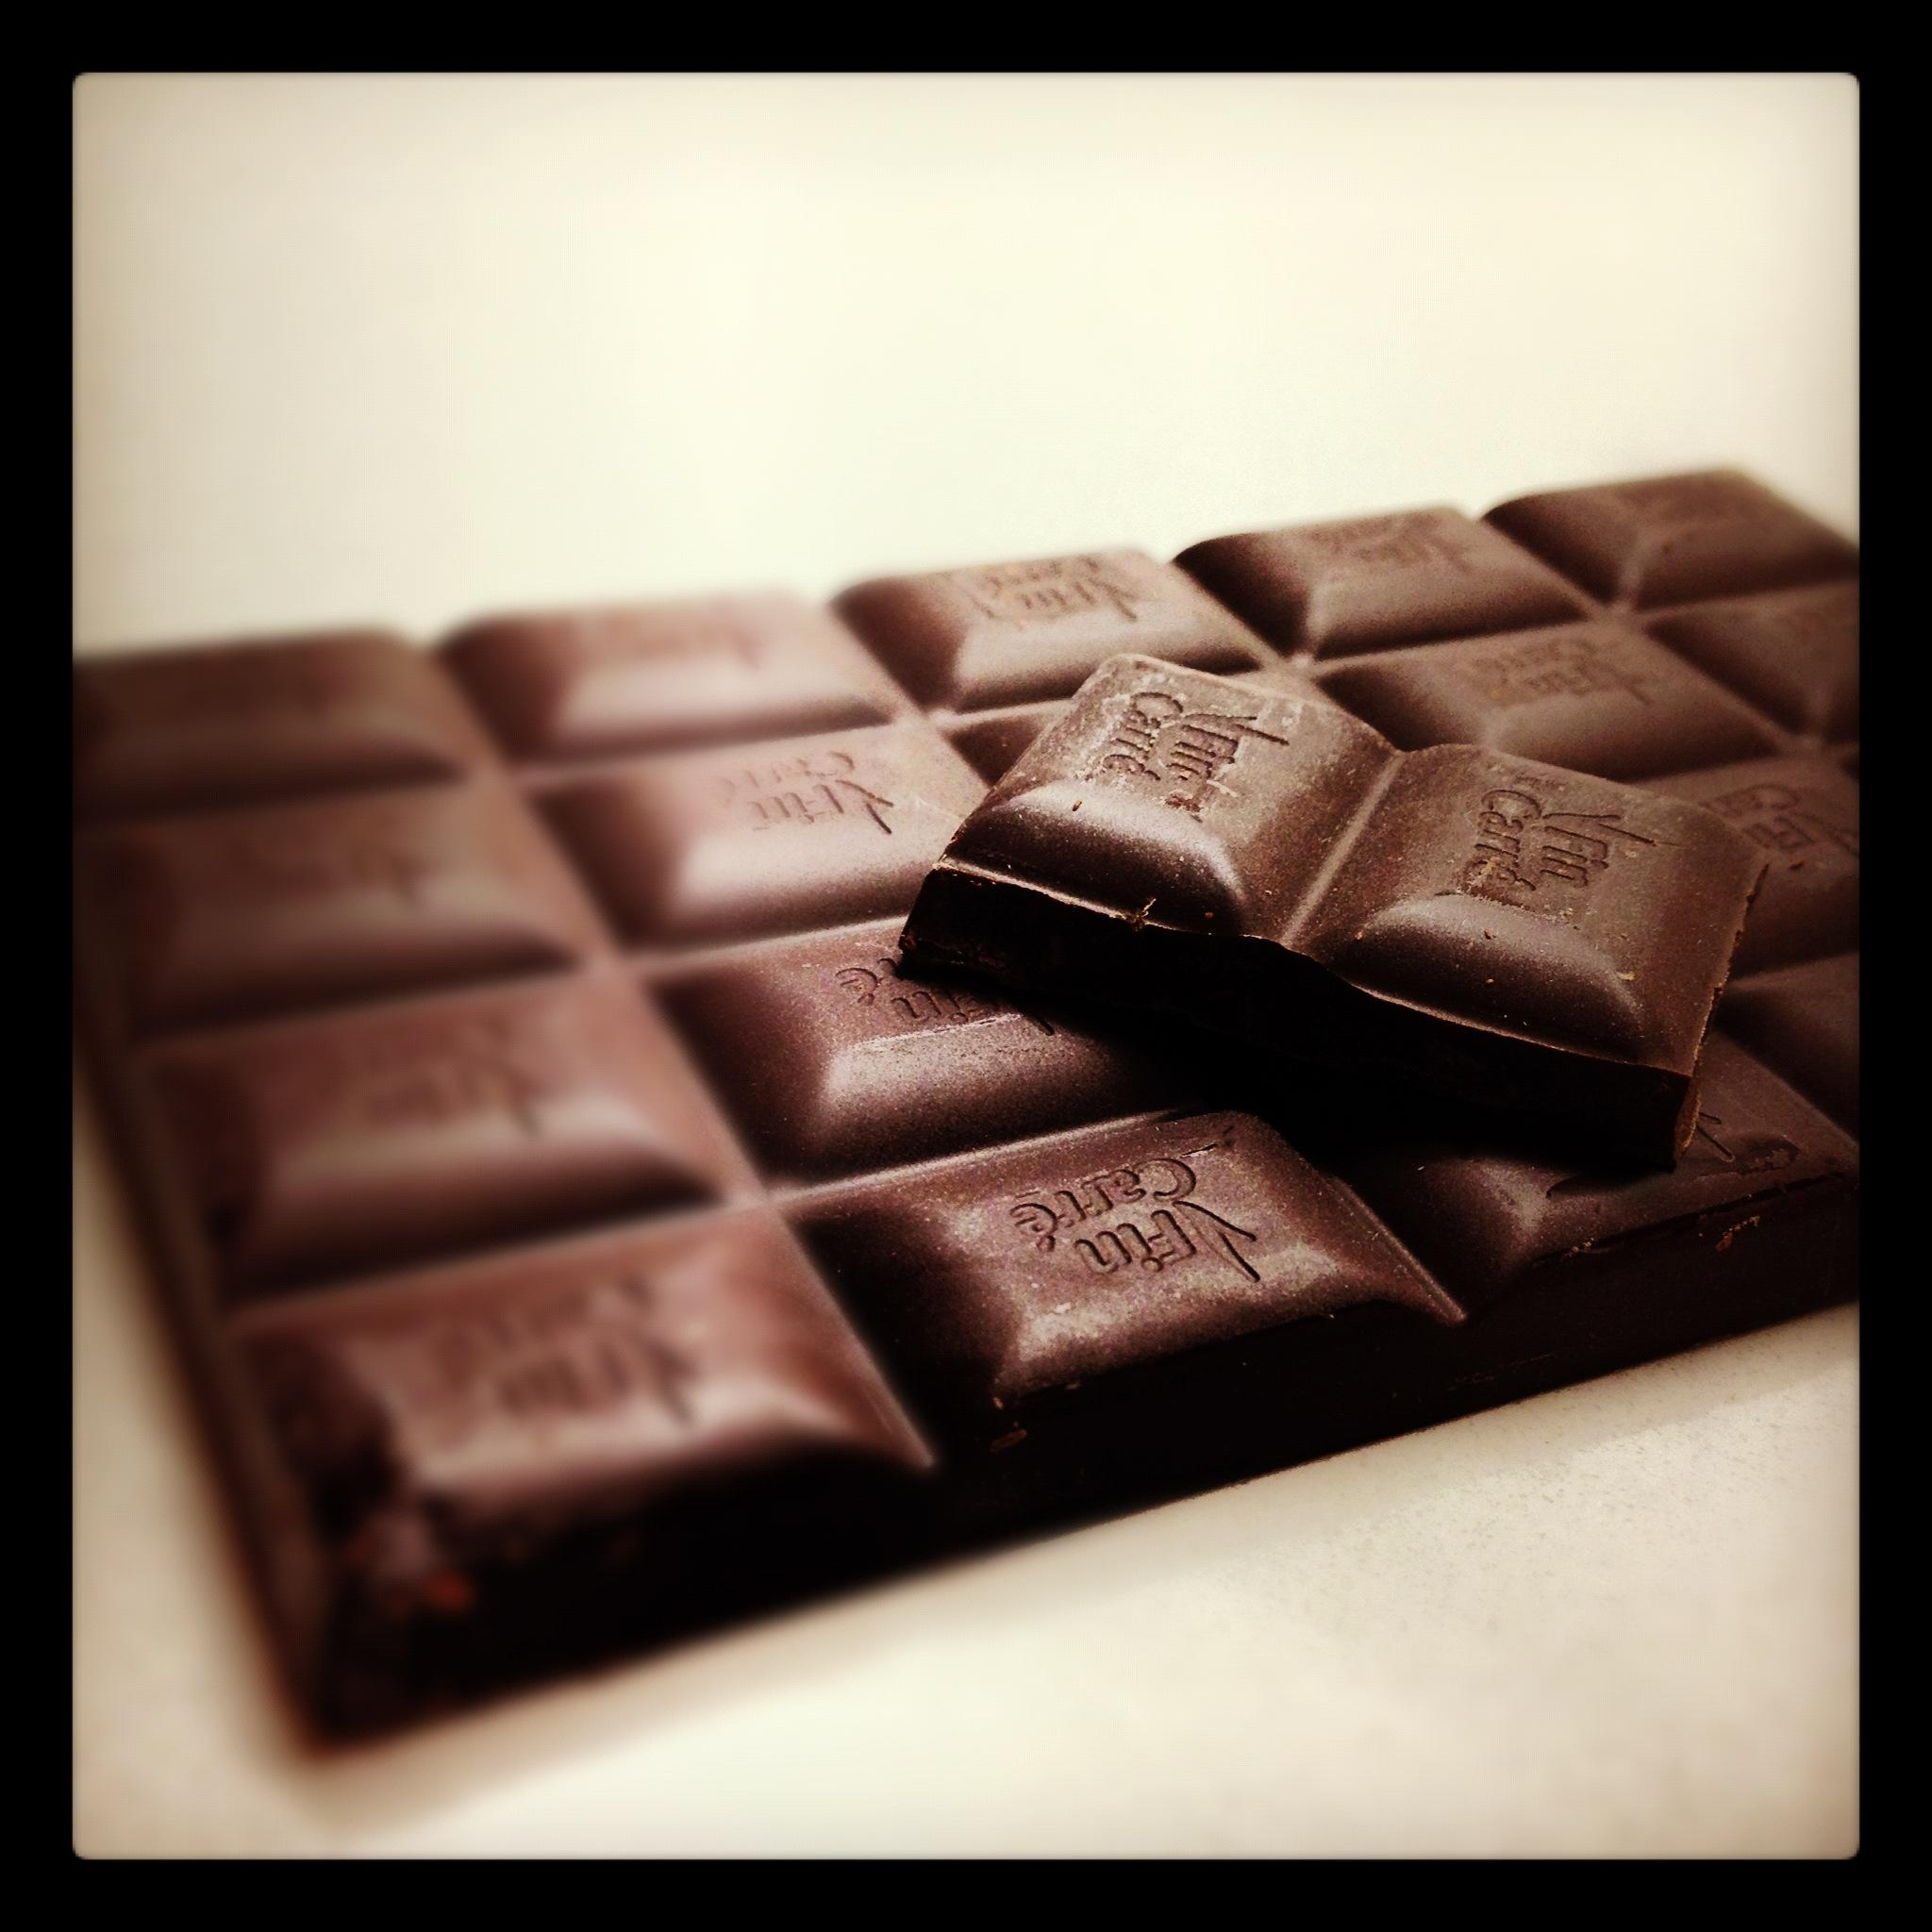 Dark Chocolate: Friend or Foe?